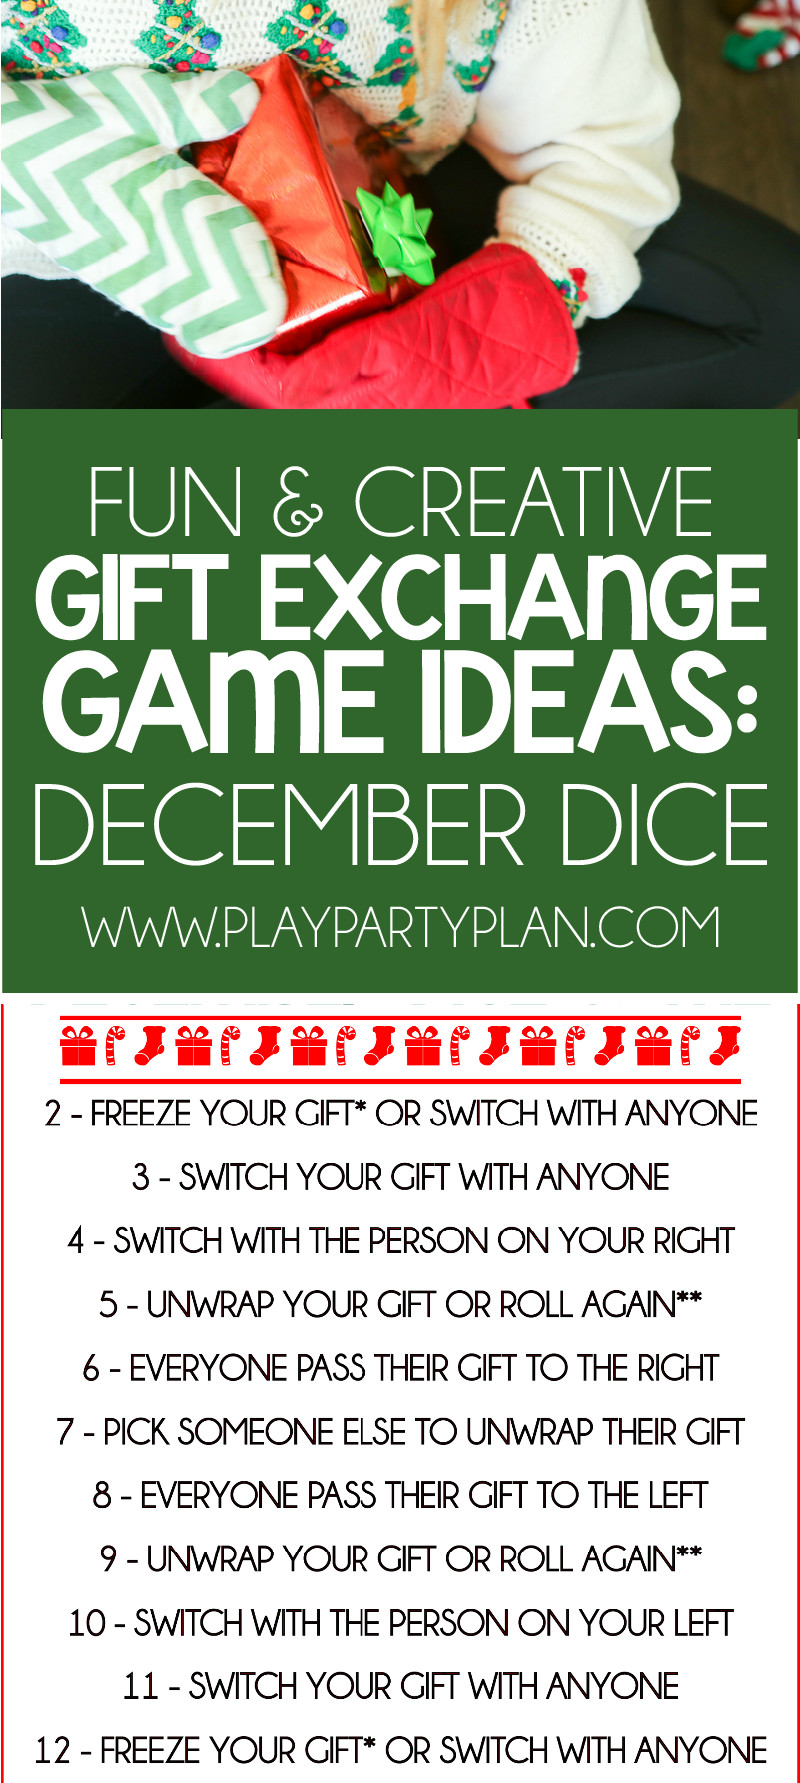 Large Family Christmas Gift Exchange Ideas  These t exchange ideas are the most unique and creative